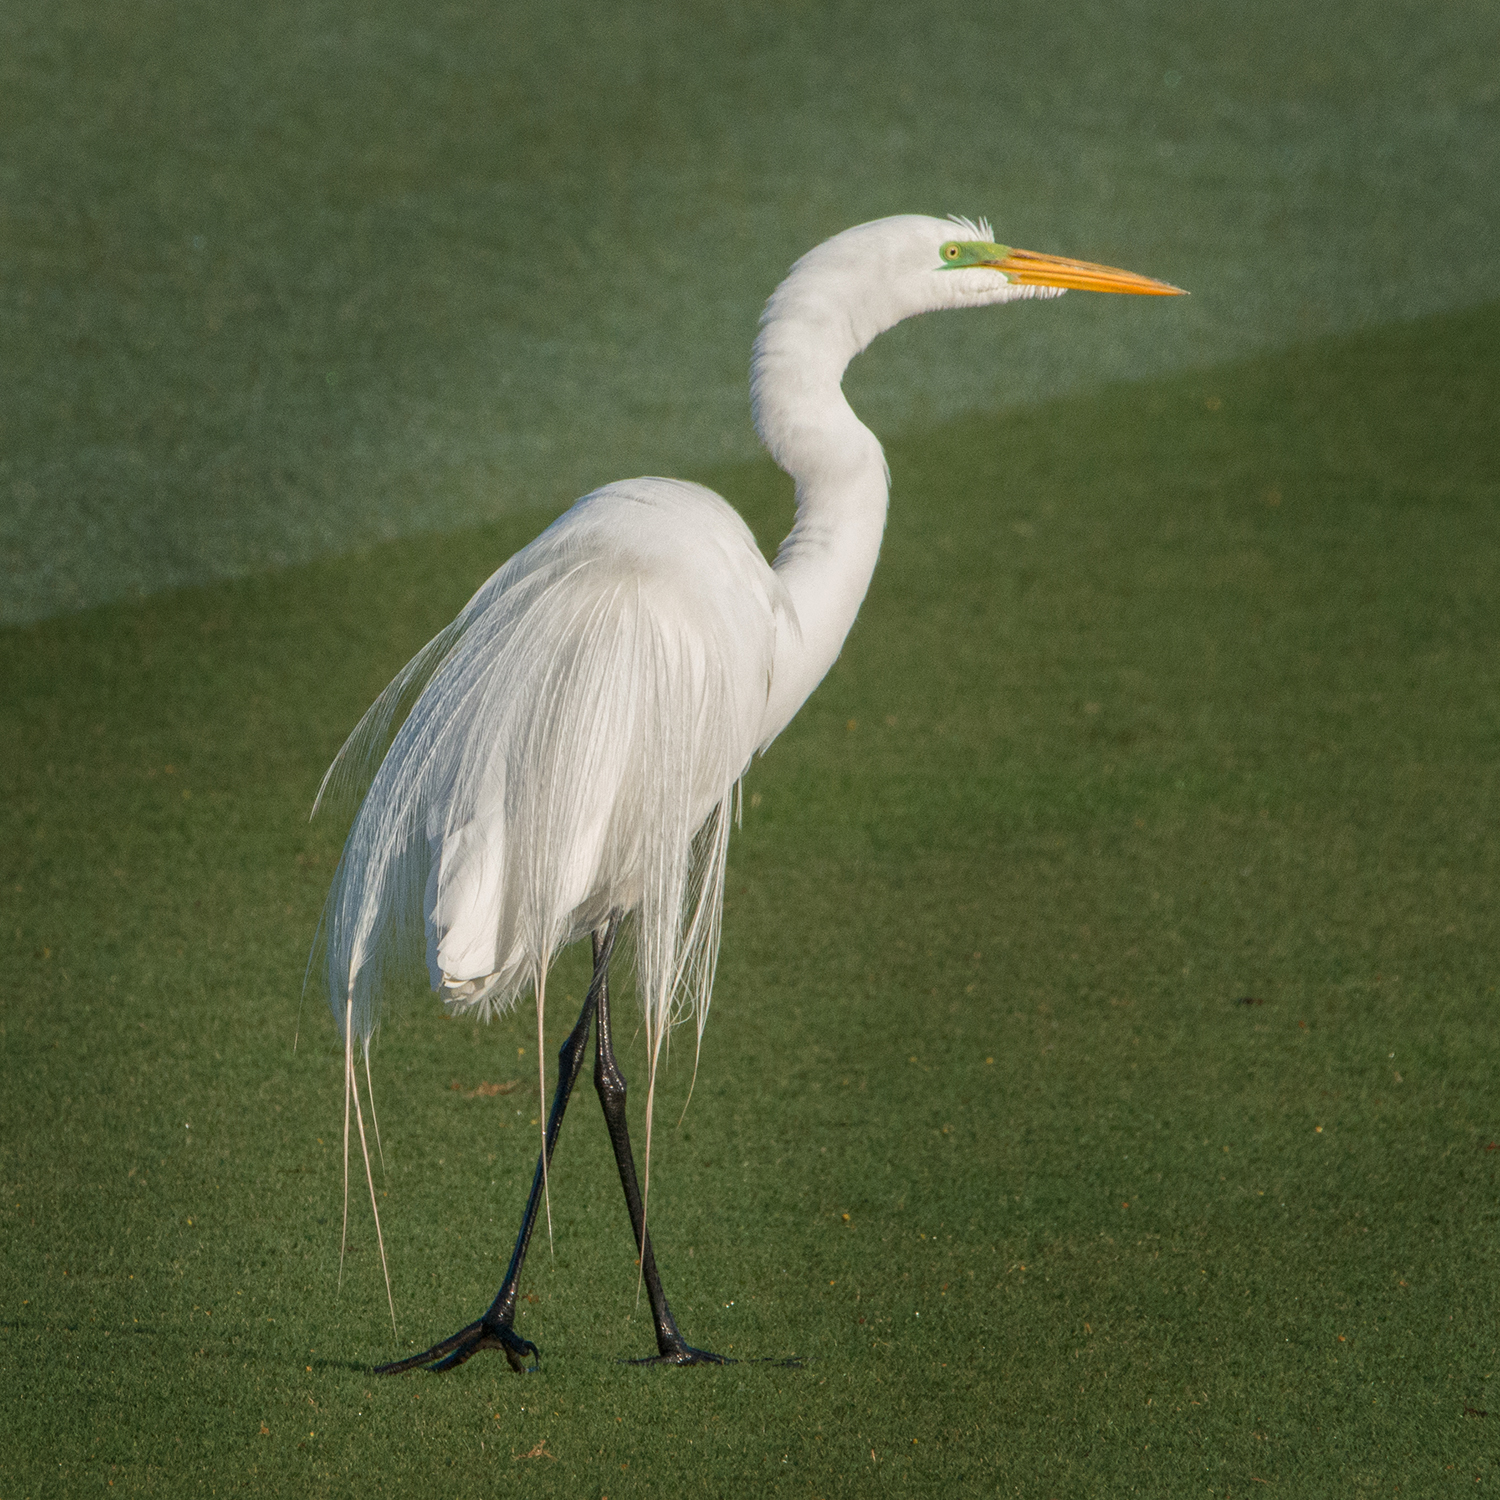 #greatwhiteegret, #feathers, #birds, #mating, #breeding, #plumage, #naples, #florida, #egret